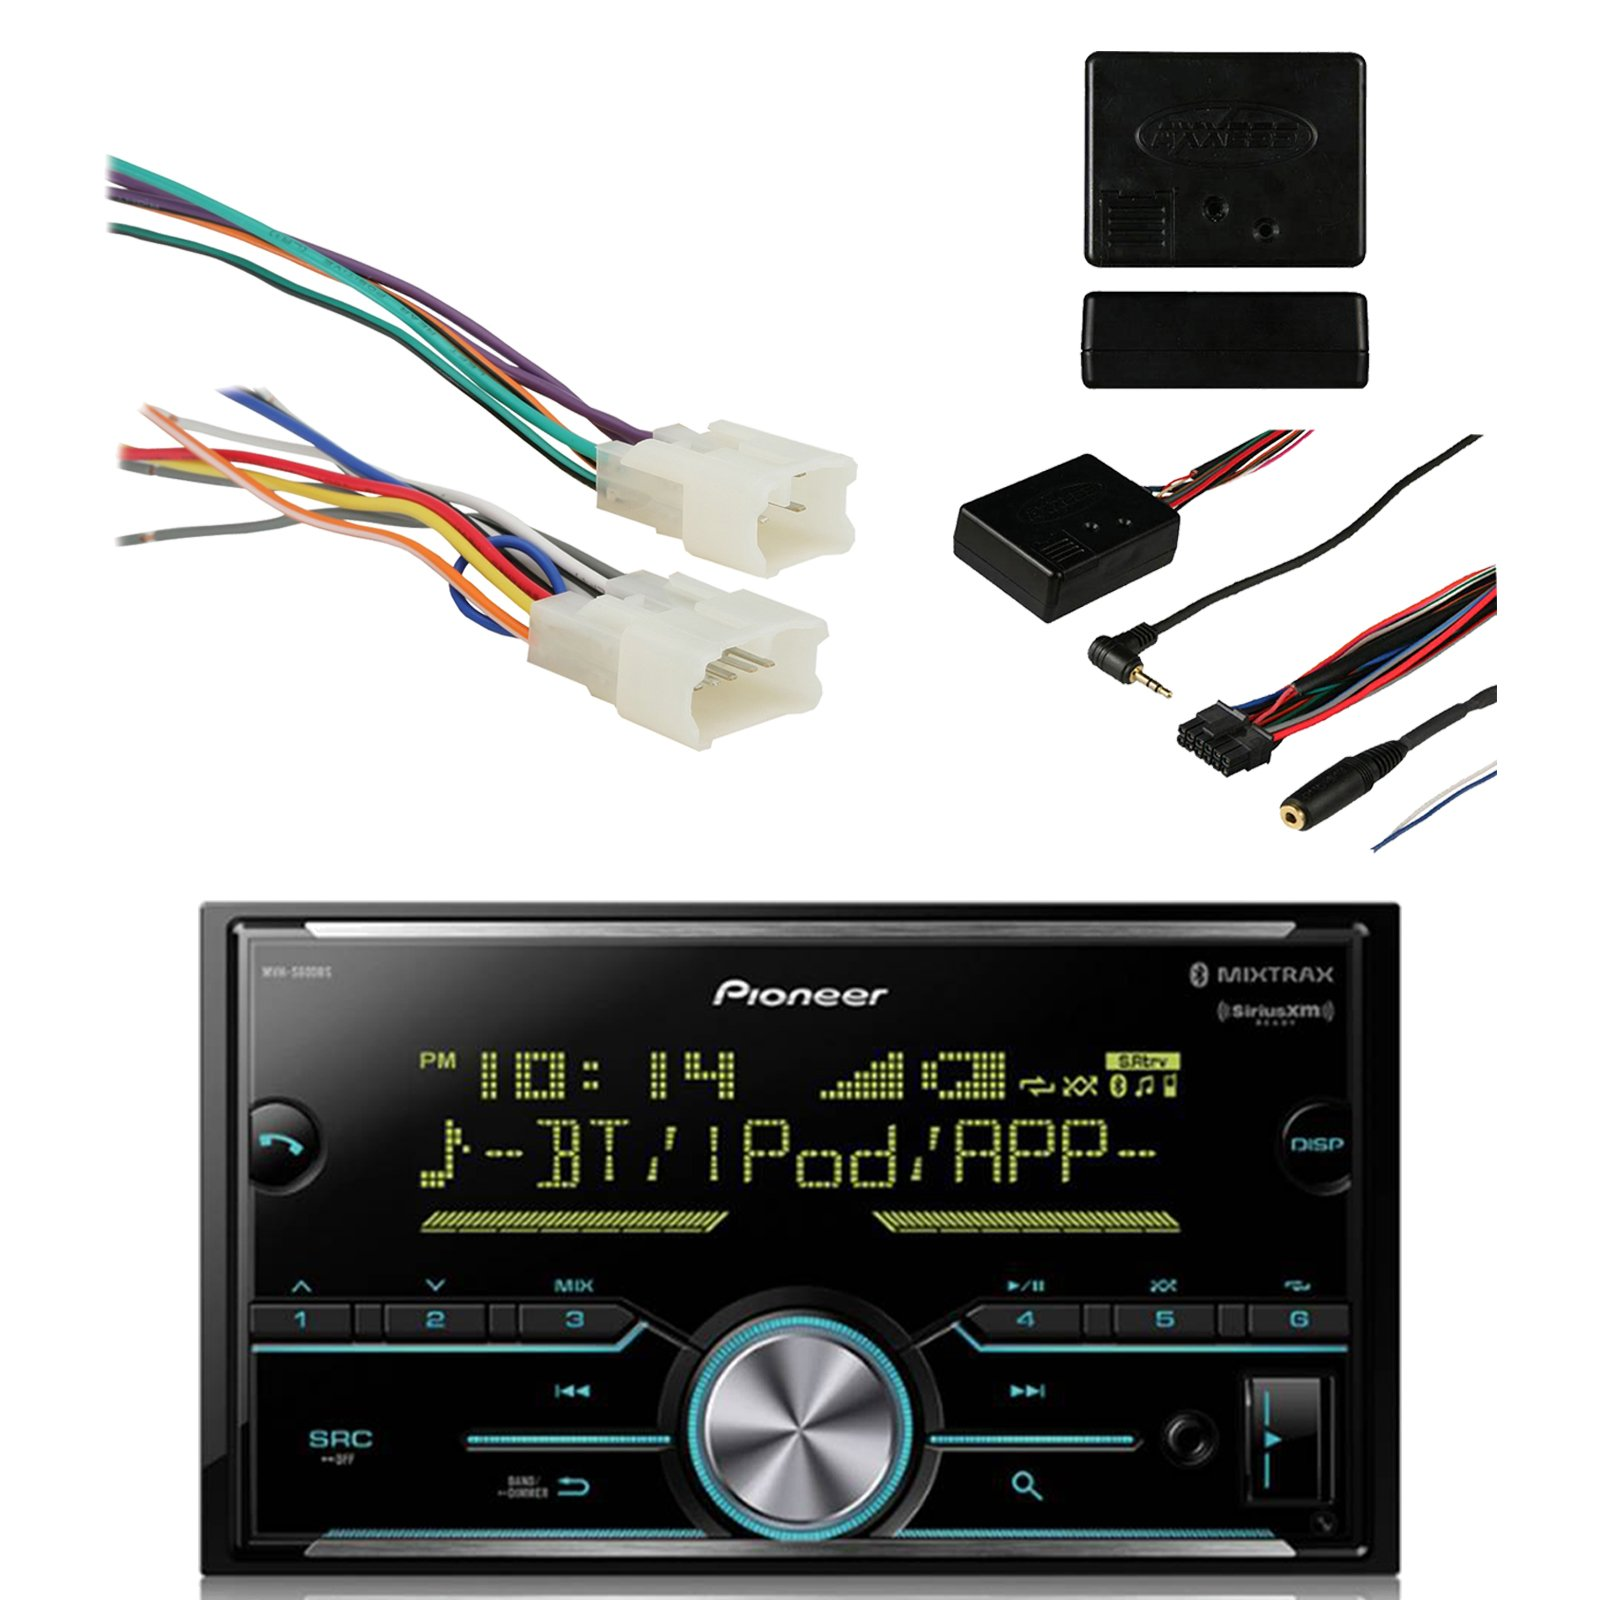 Pioneer Vehicle Digital Media Double Din Receiver with Bluetooth, Black with Metra Radio Wiring Harness For Toyota 87-Up Power 4 Speaker and Metra Axxess Universal Steering Wheel Control Interface by EnrockAutomotive